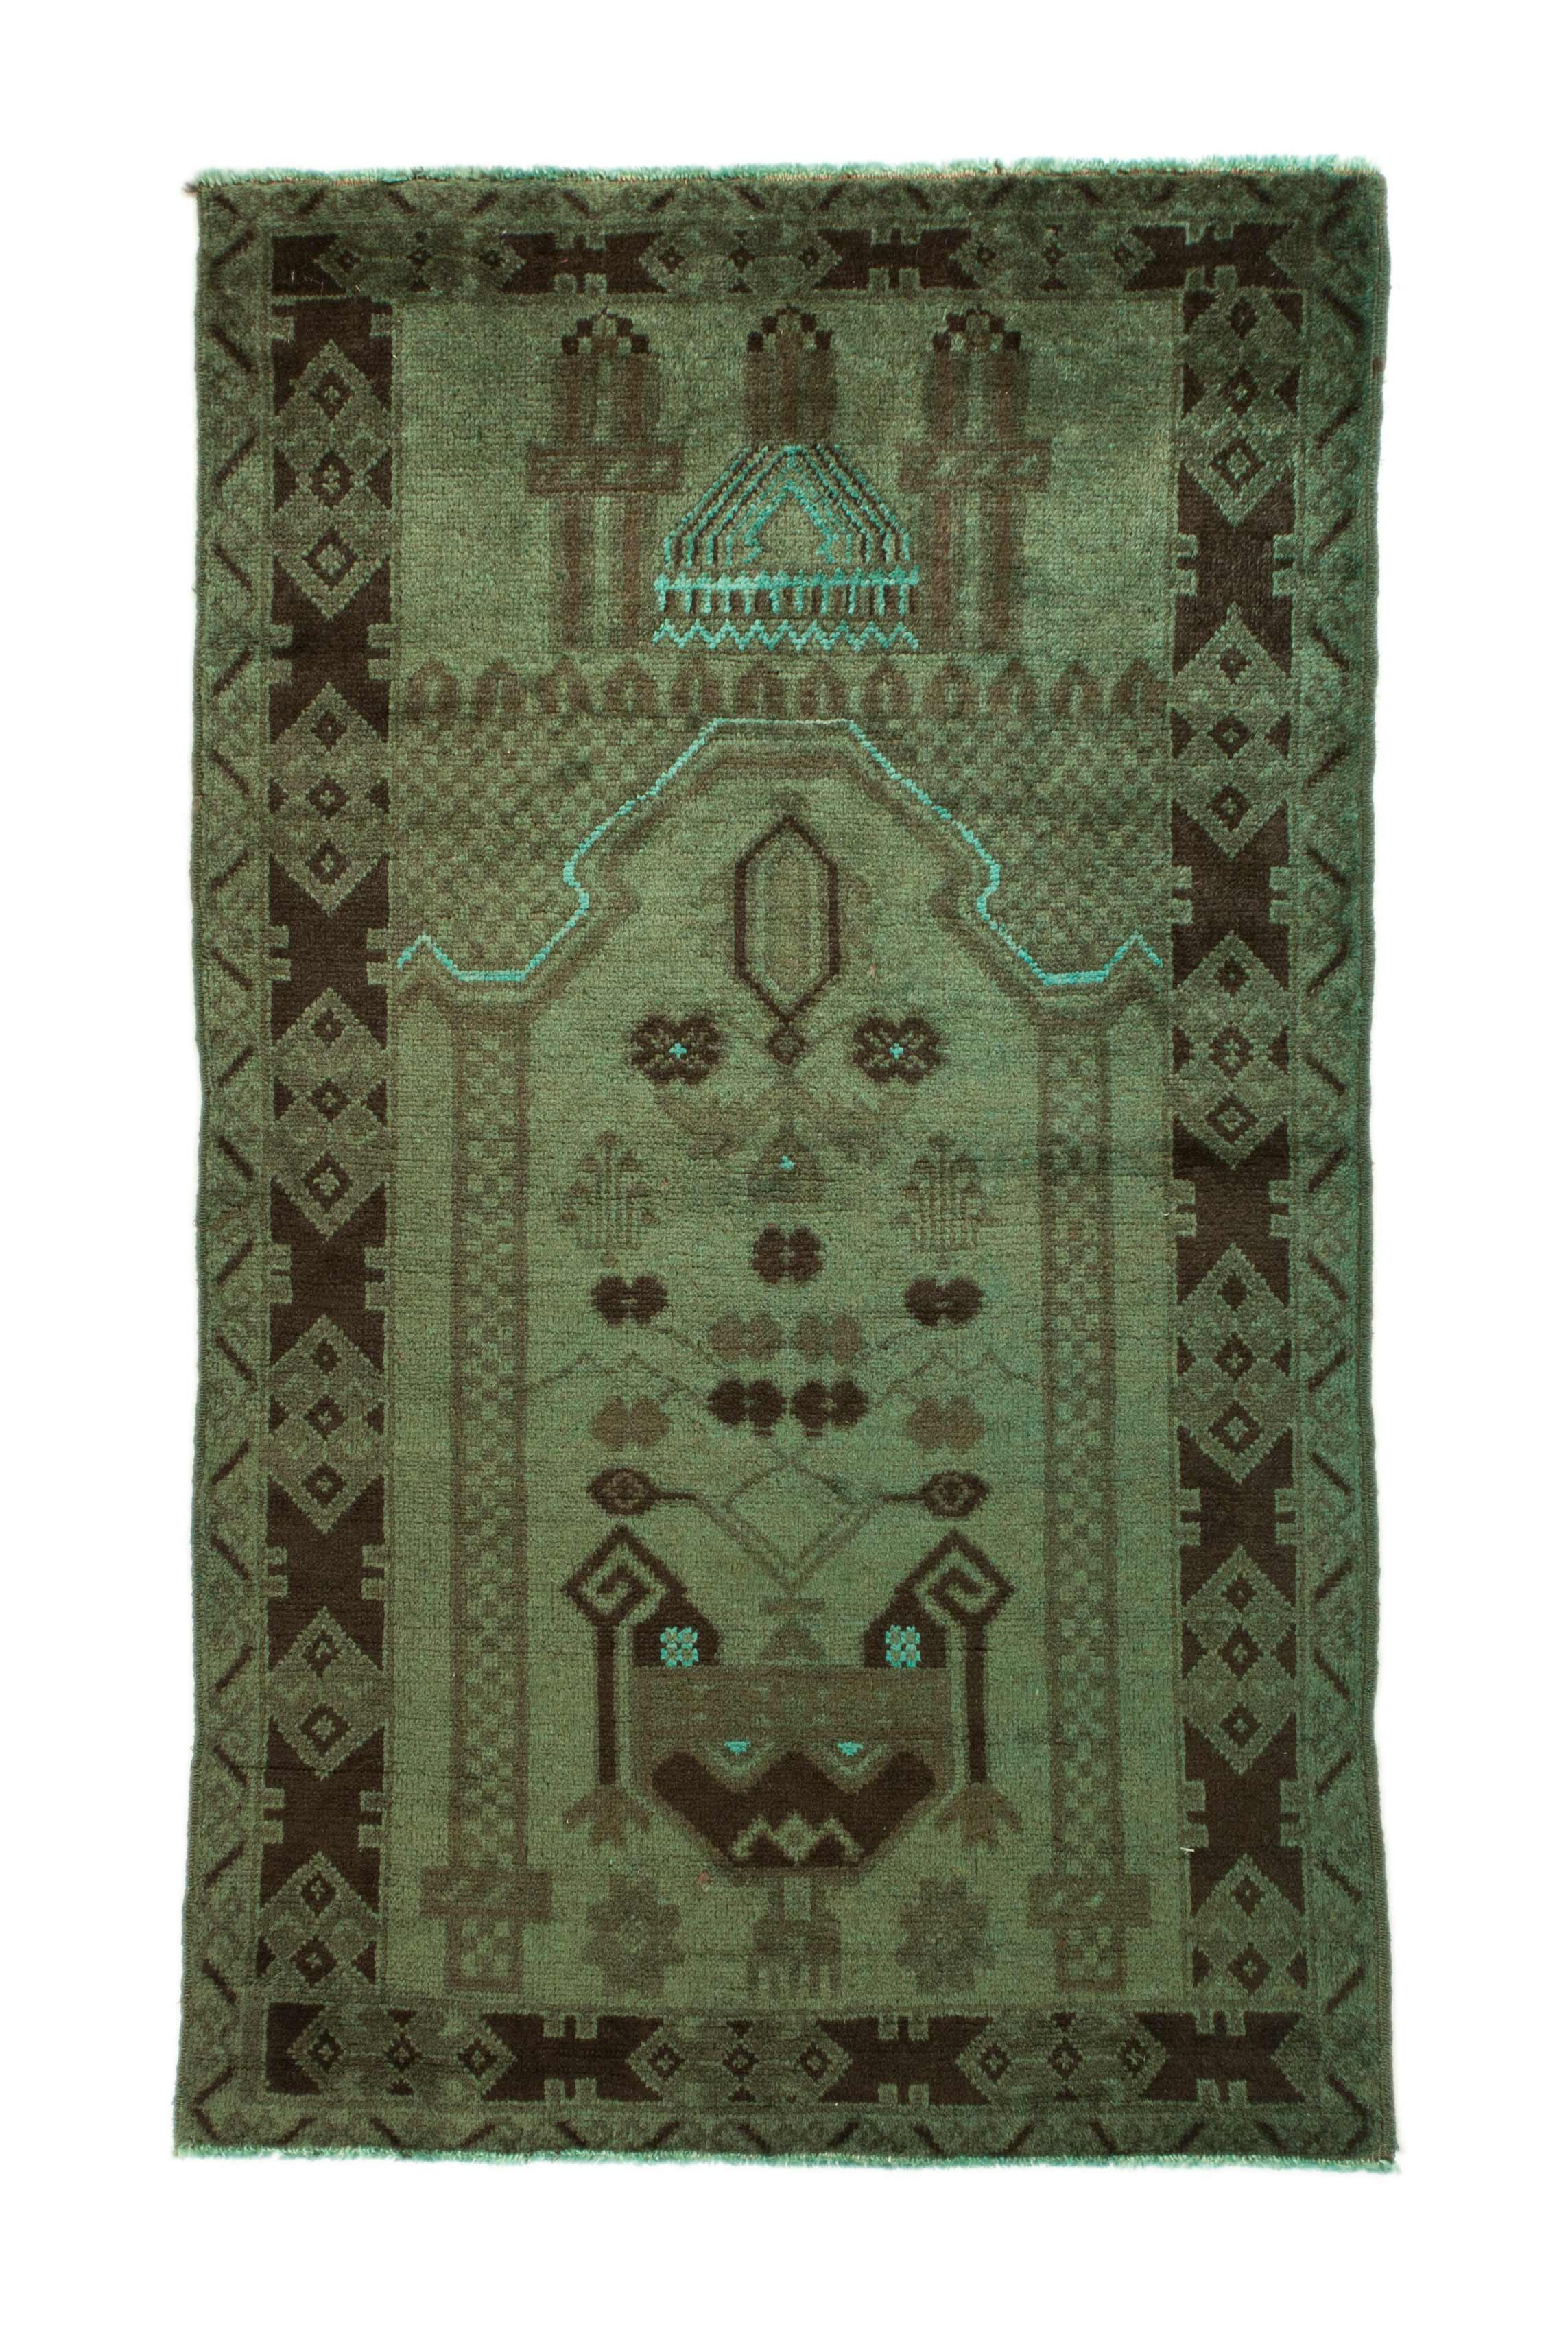 3x4 Overdyed Tribal Rug Vintage 2684 - west of hudson